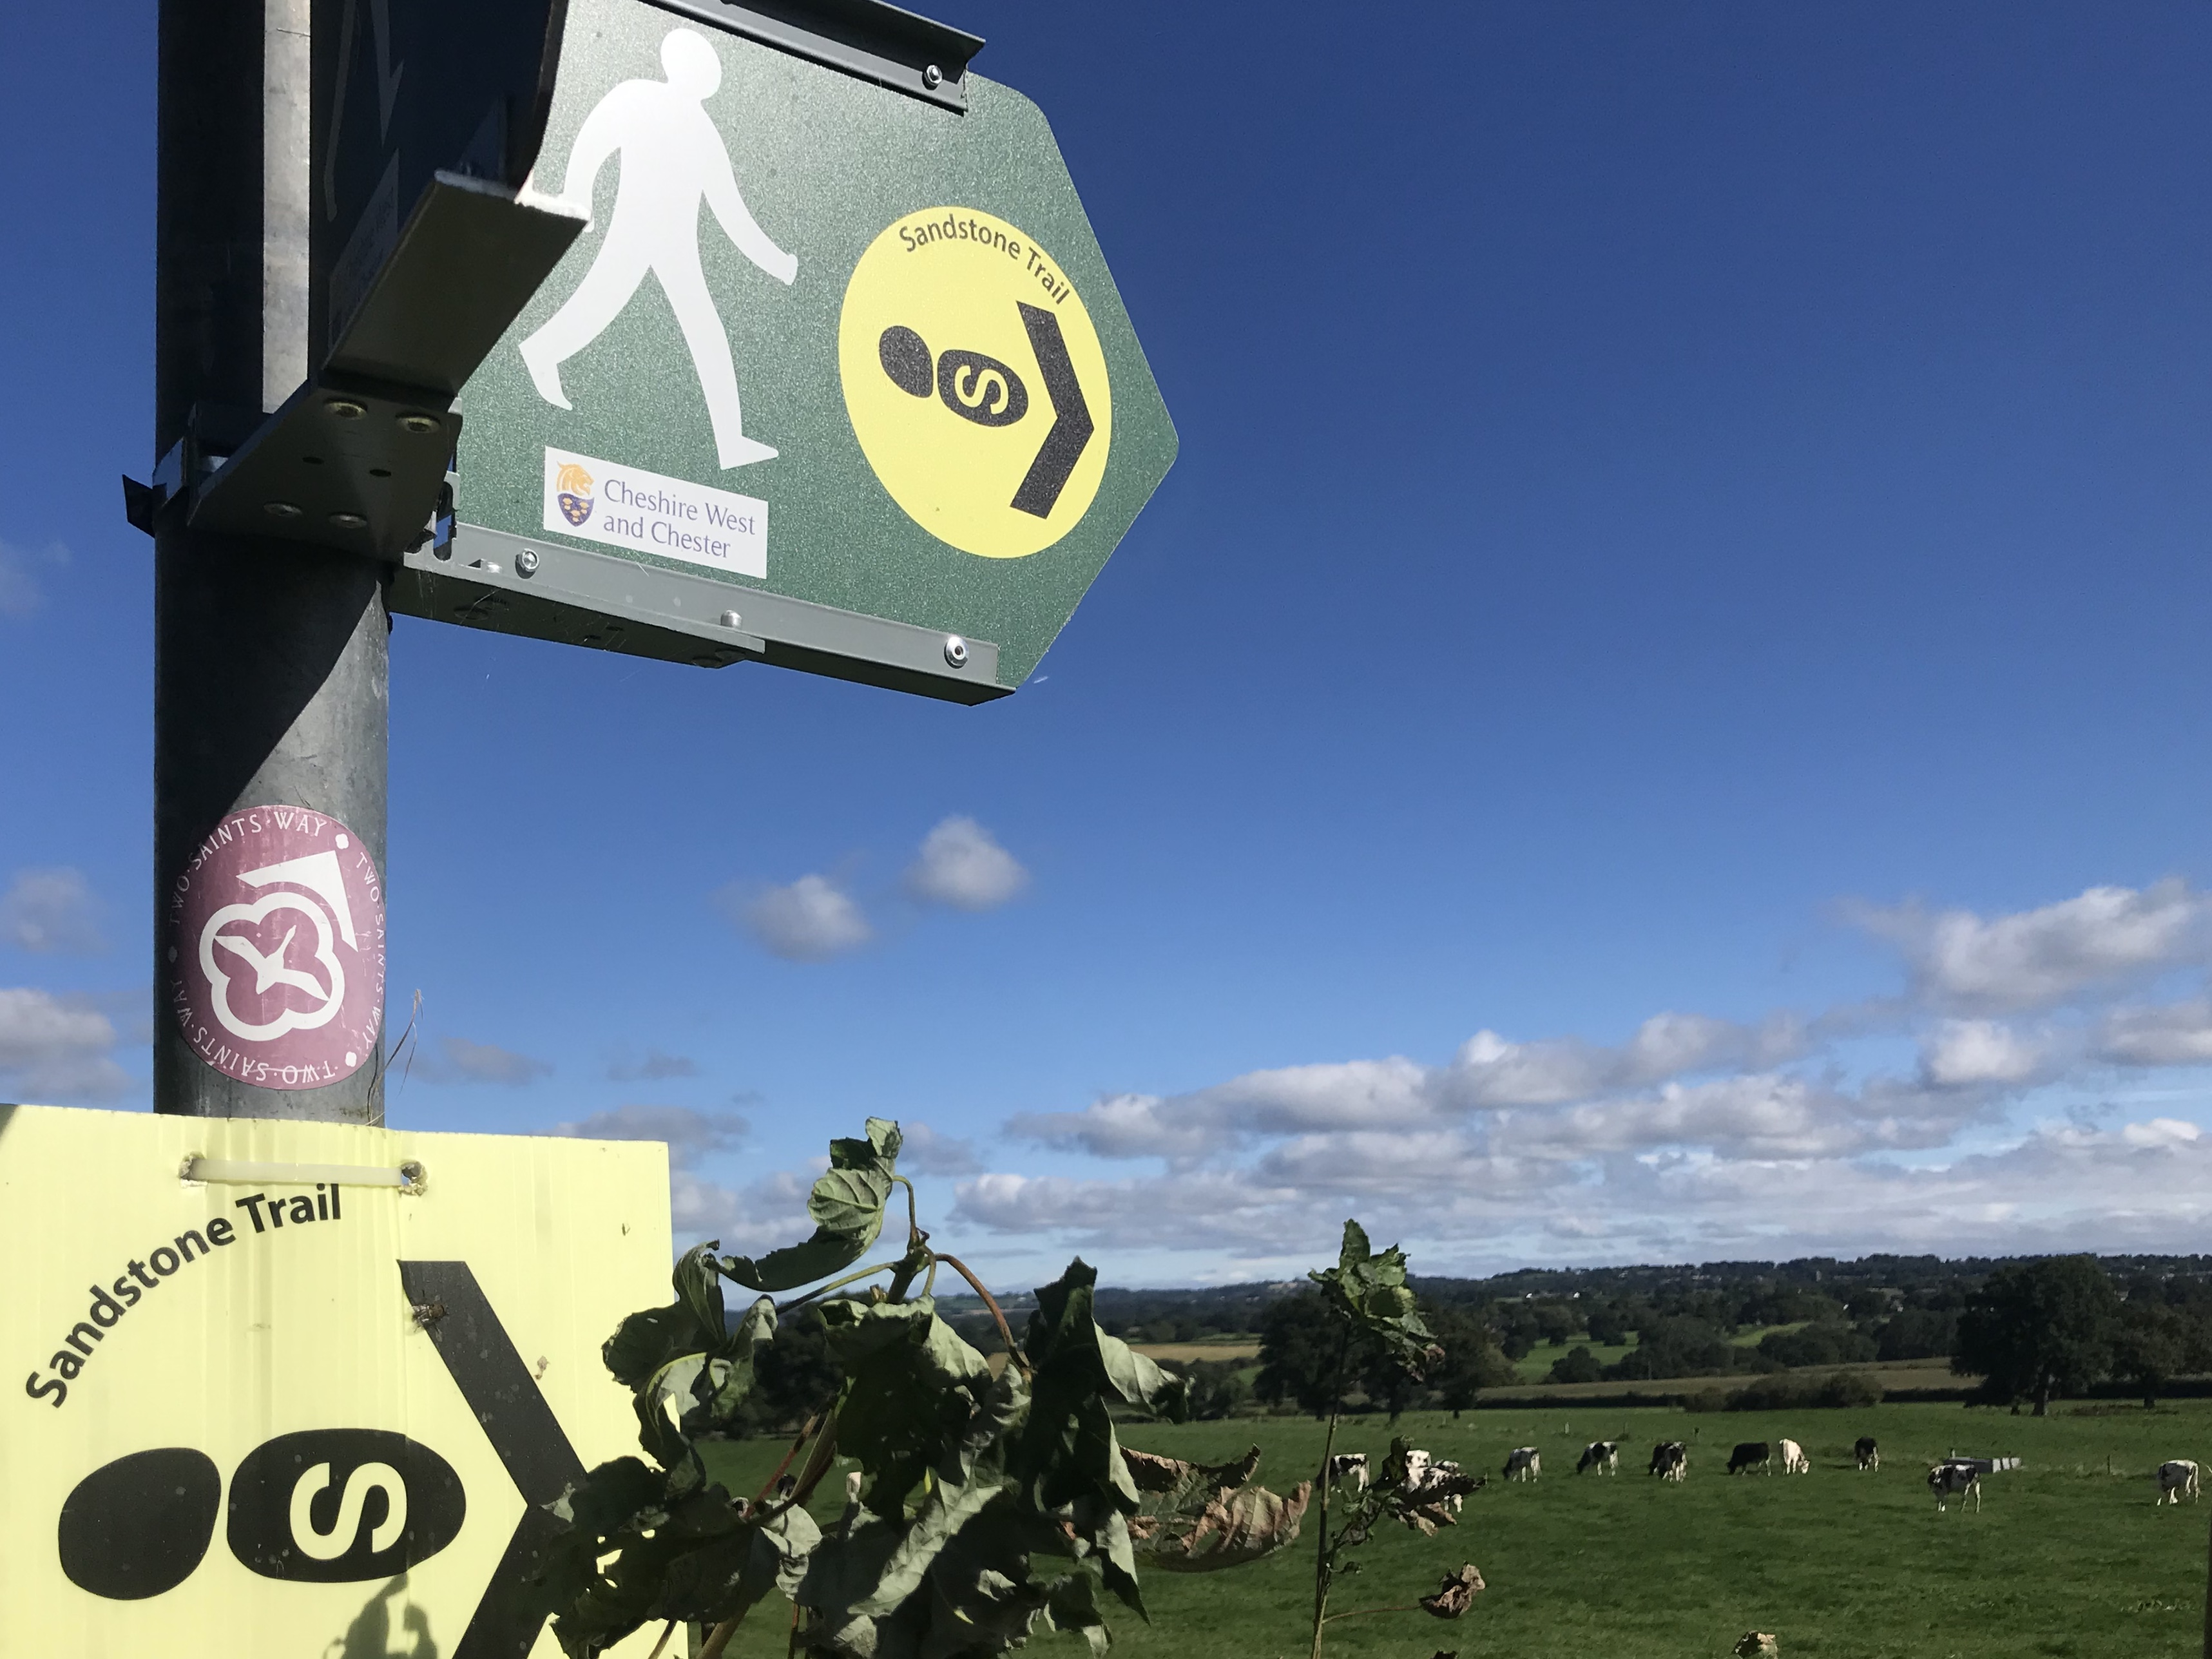 A signpost overlooking a field of cows